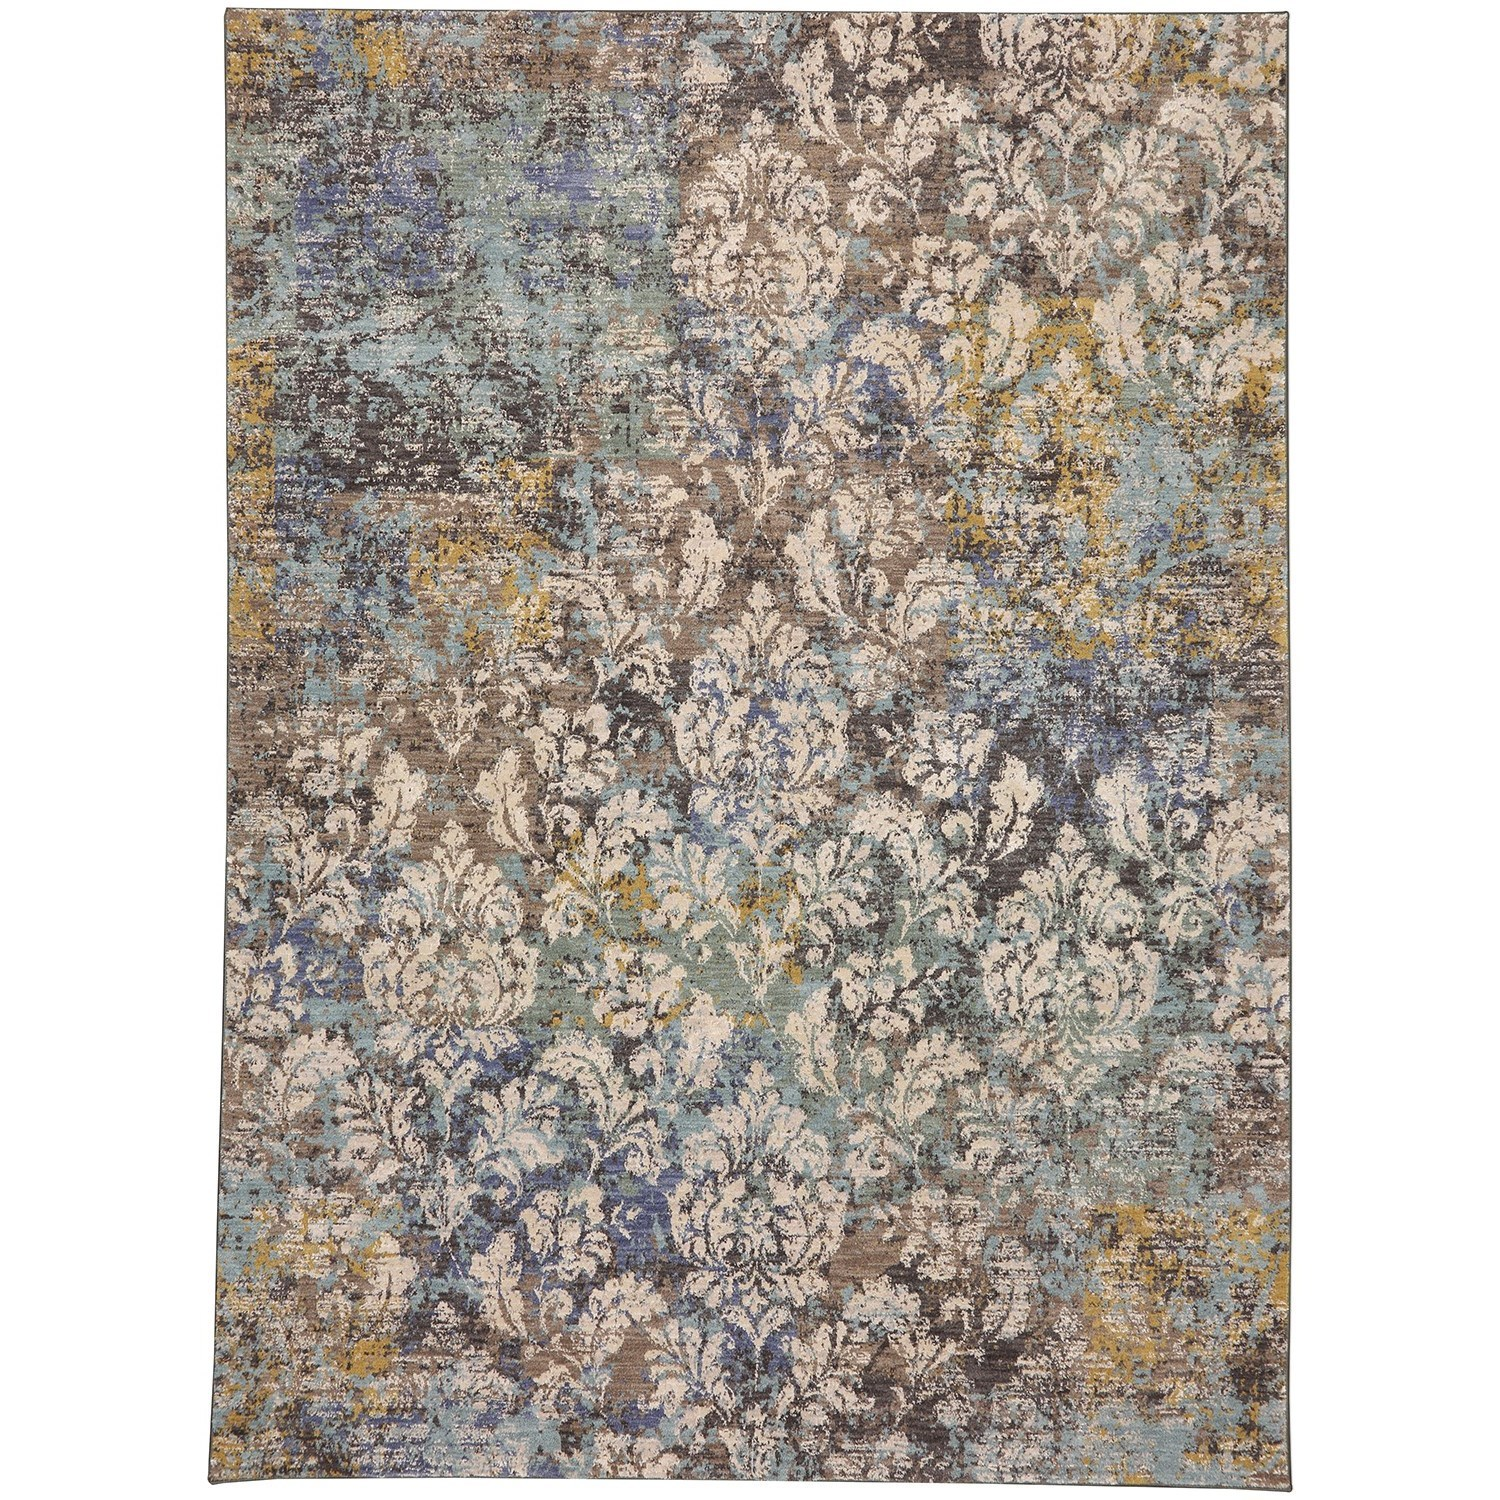 8'x11' Rectangle Ornamental Area Rug